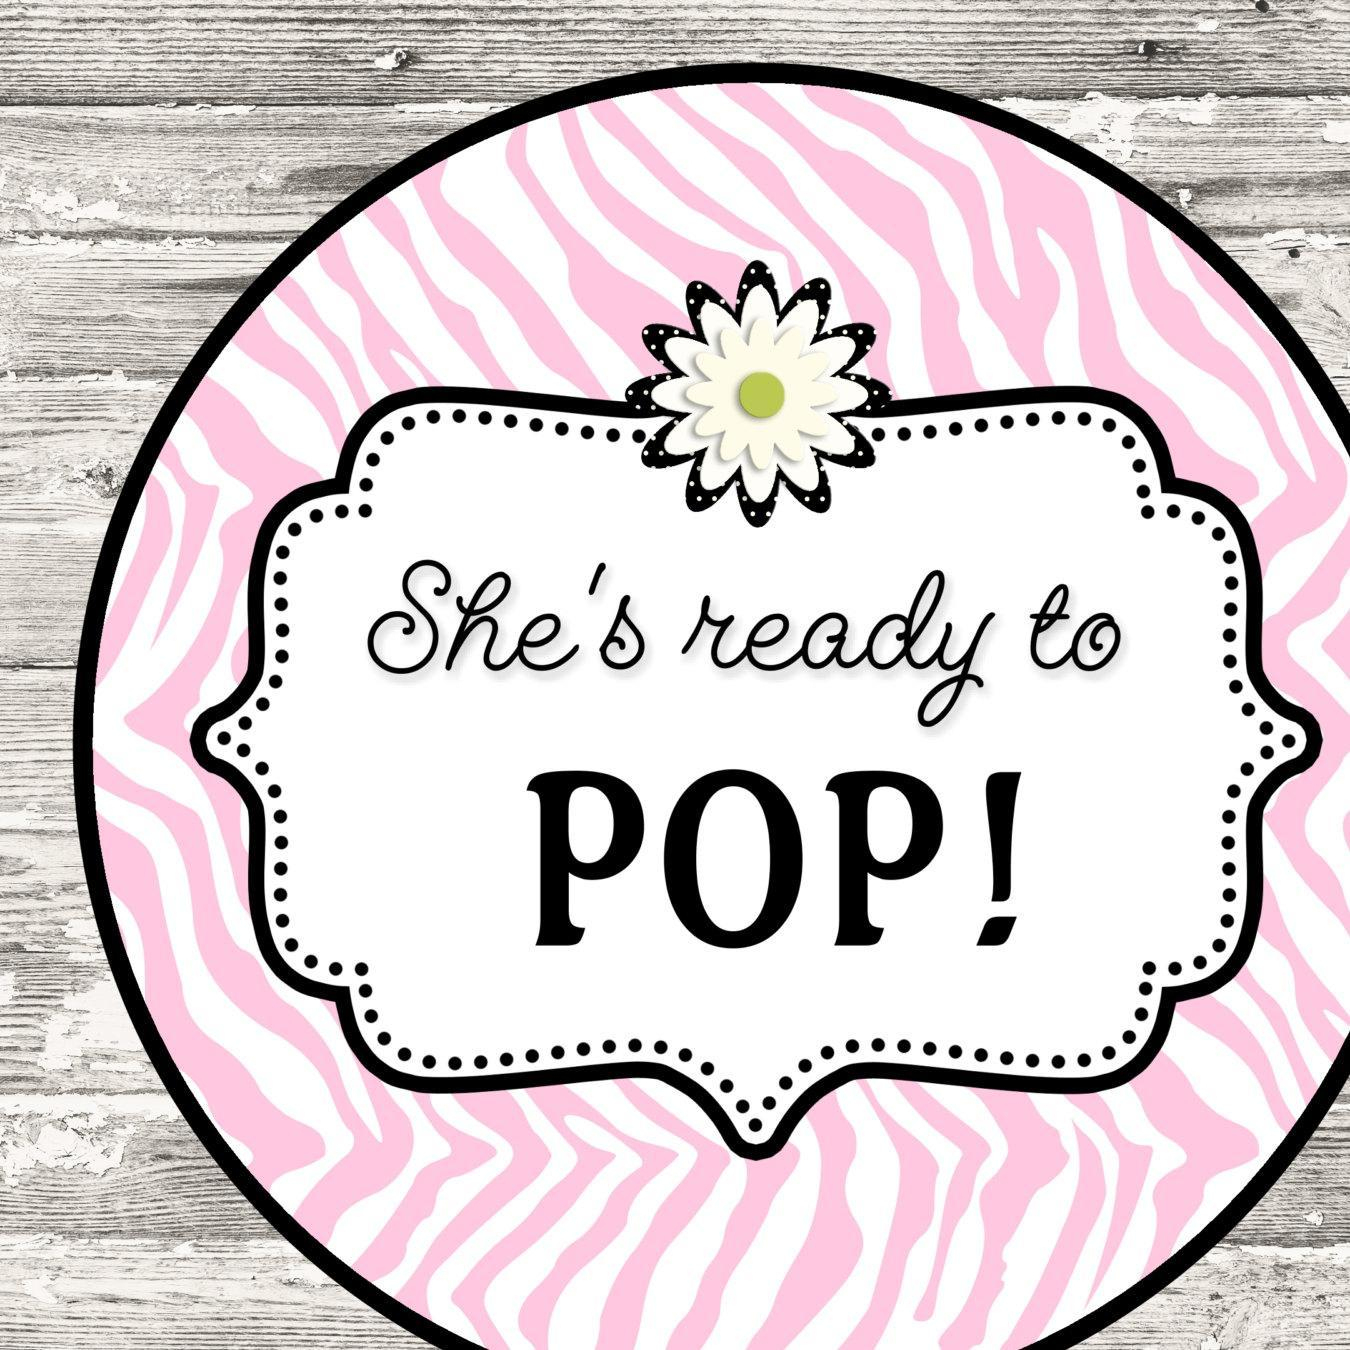 About To Pop Baby Shower Free Printables - Baby Shower Ideas - Ready To Pop Free Printable